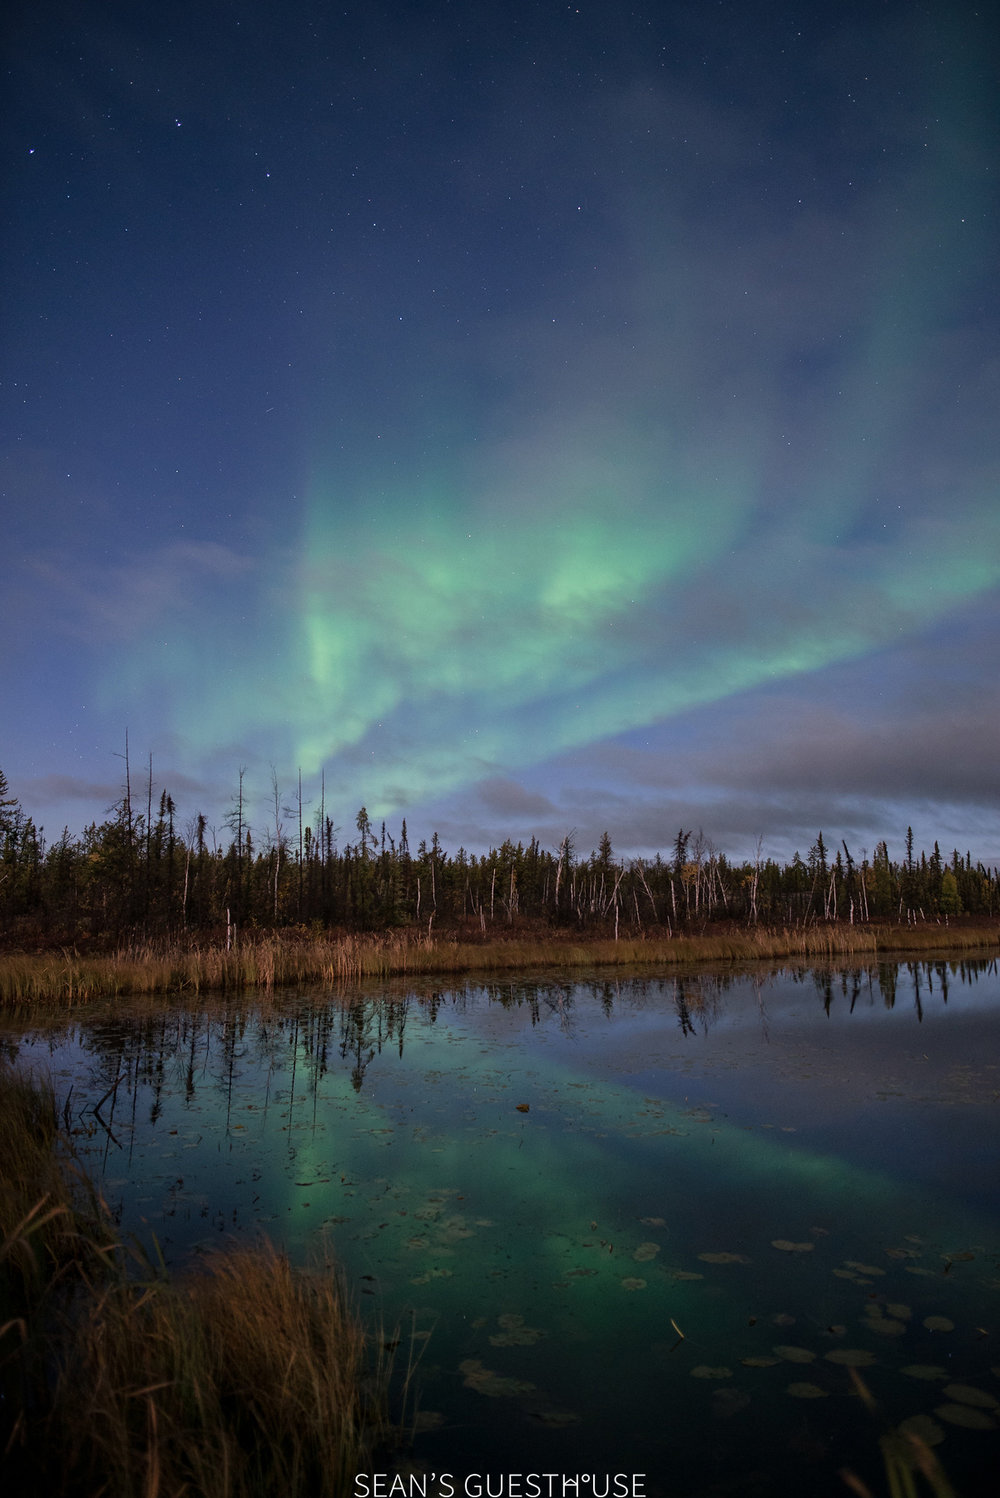 Sean's Guesthouse - Yellowknife Northern Lights Tours - 1.jpg